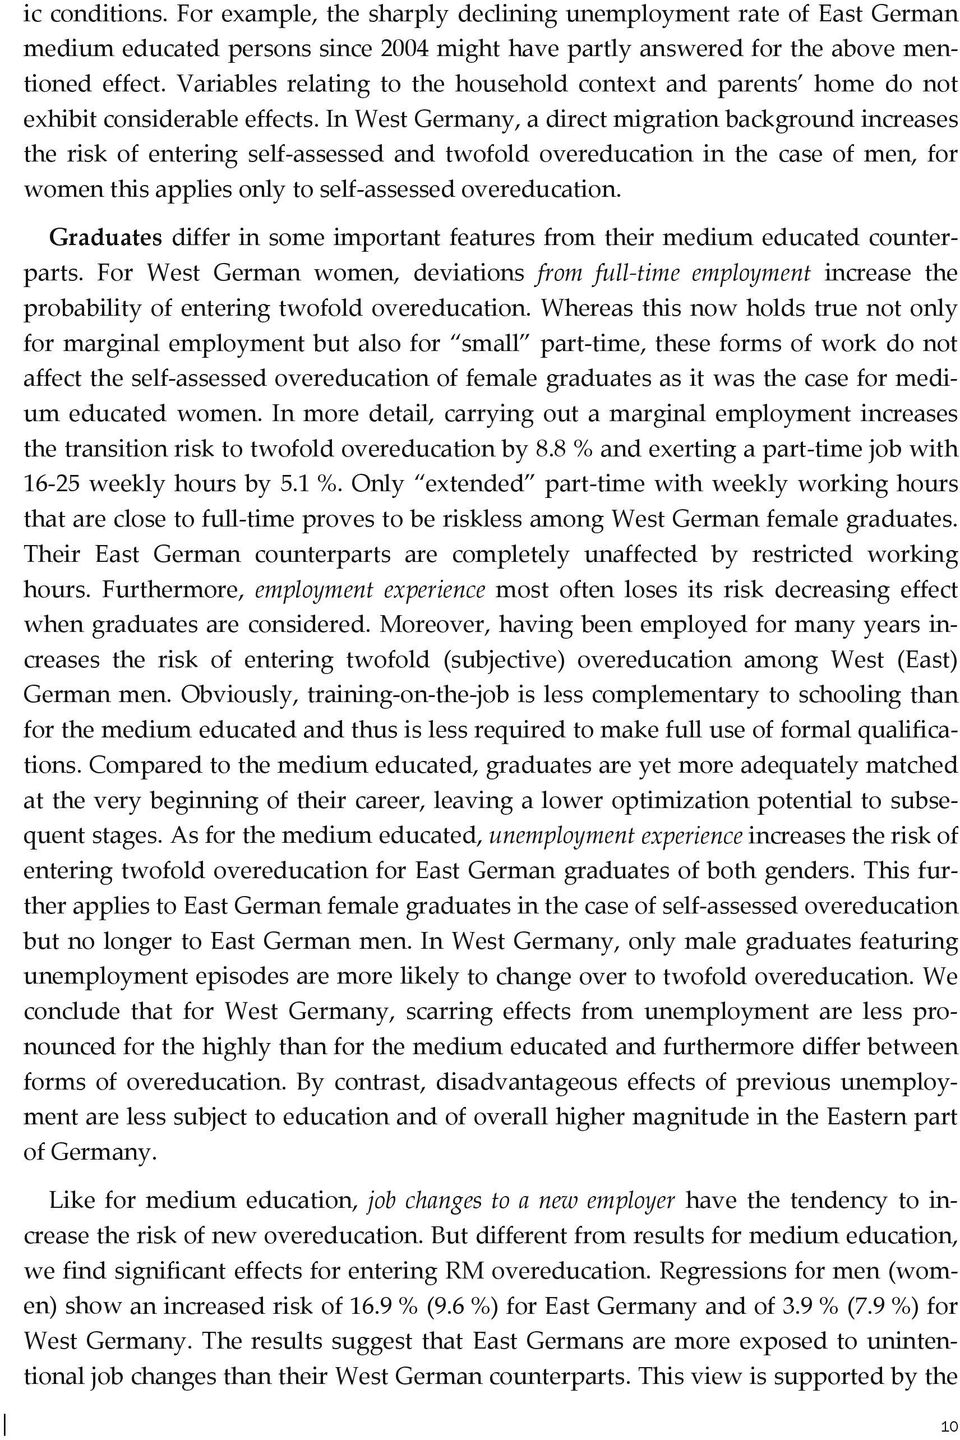 In West Germany, a direct migration background increases the risk of entering self assessed and twofold overeducation in the case of men, for women this applies only to self assessed overeducation.